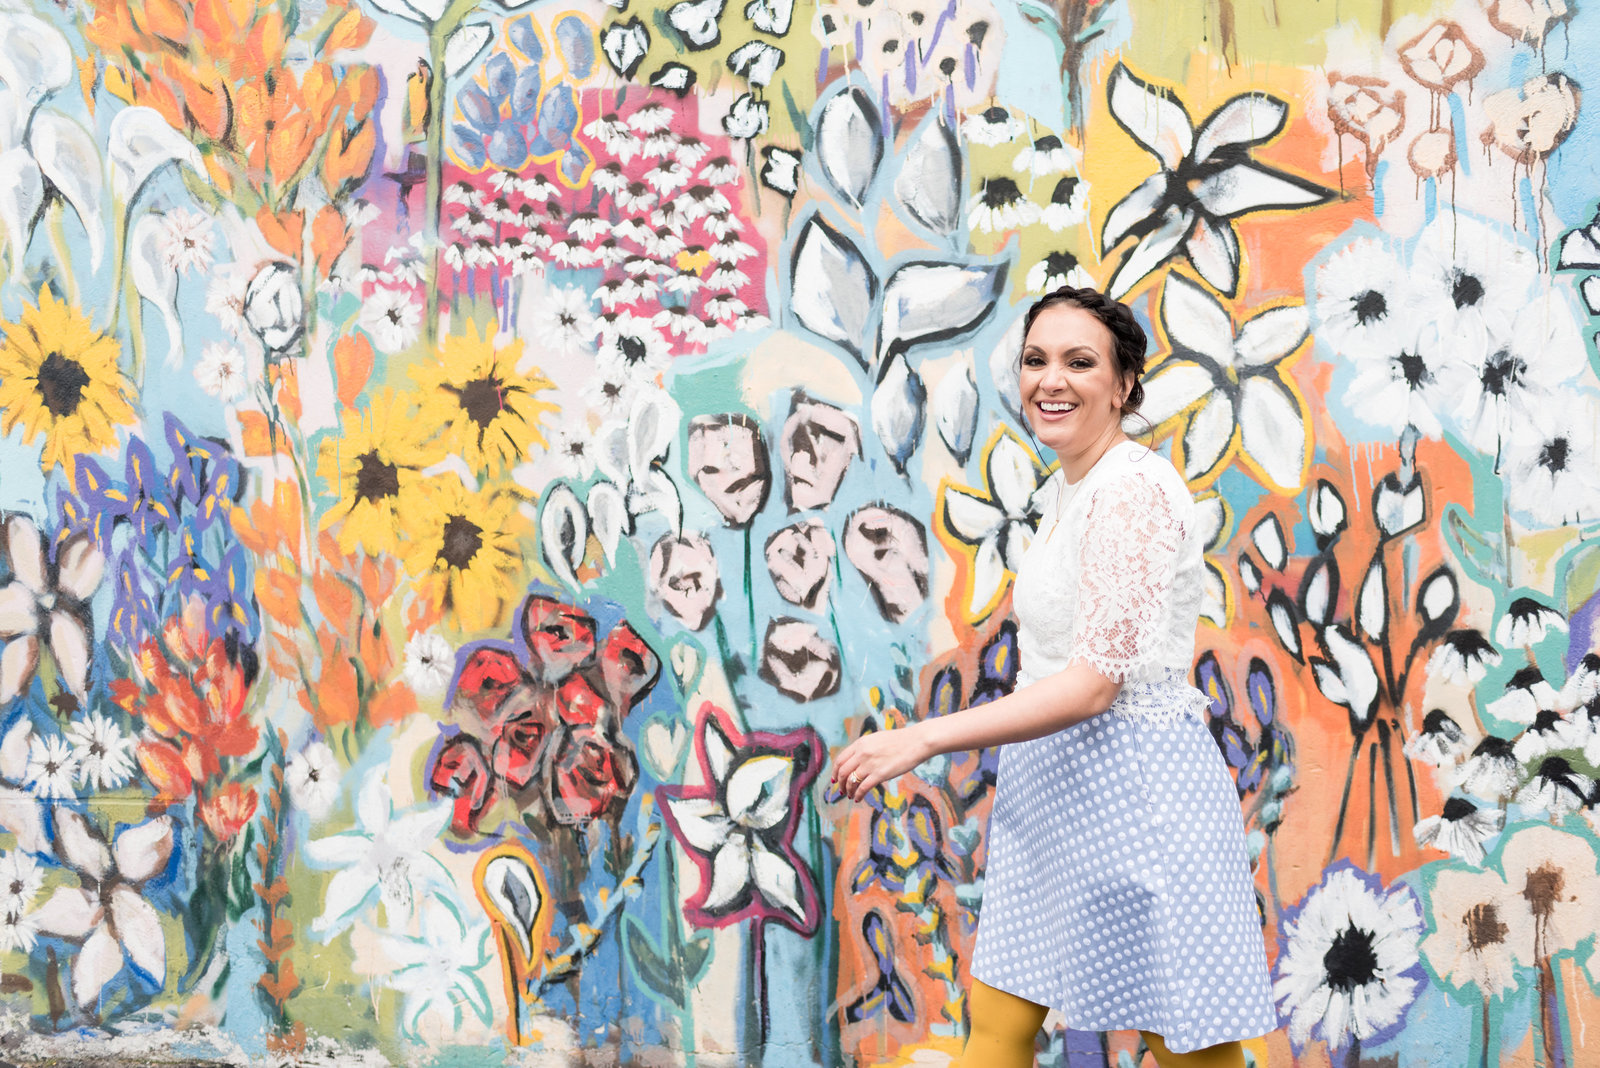 Joyful woman wearing a lace white top with blue dress is walking and smiling as she walks past a floral backdrop in 12th south